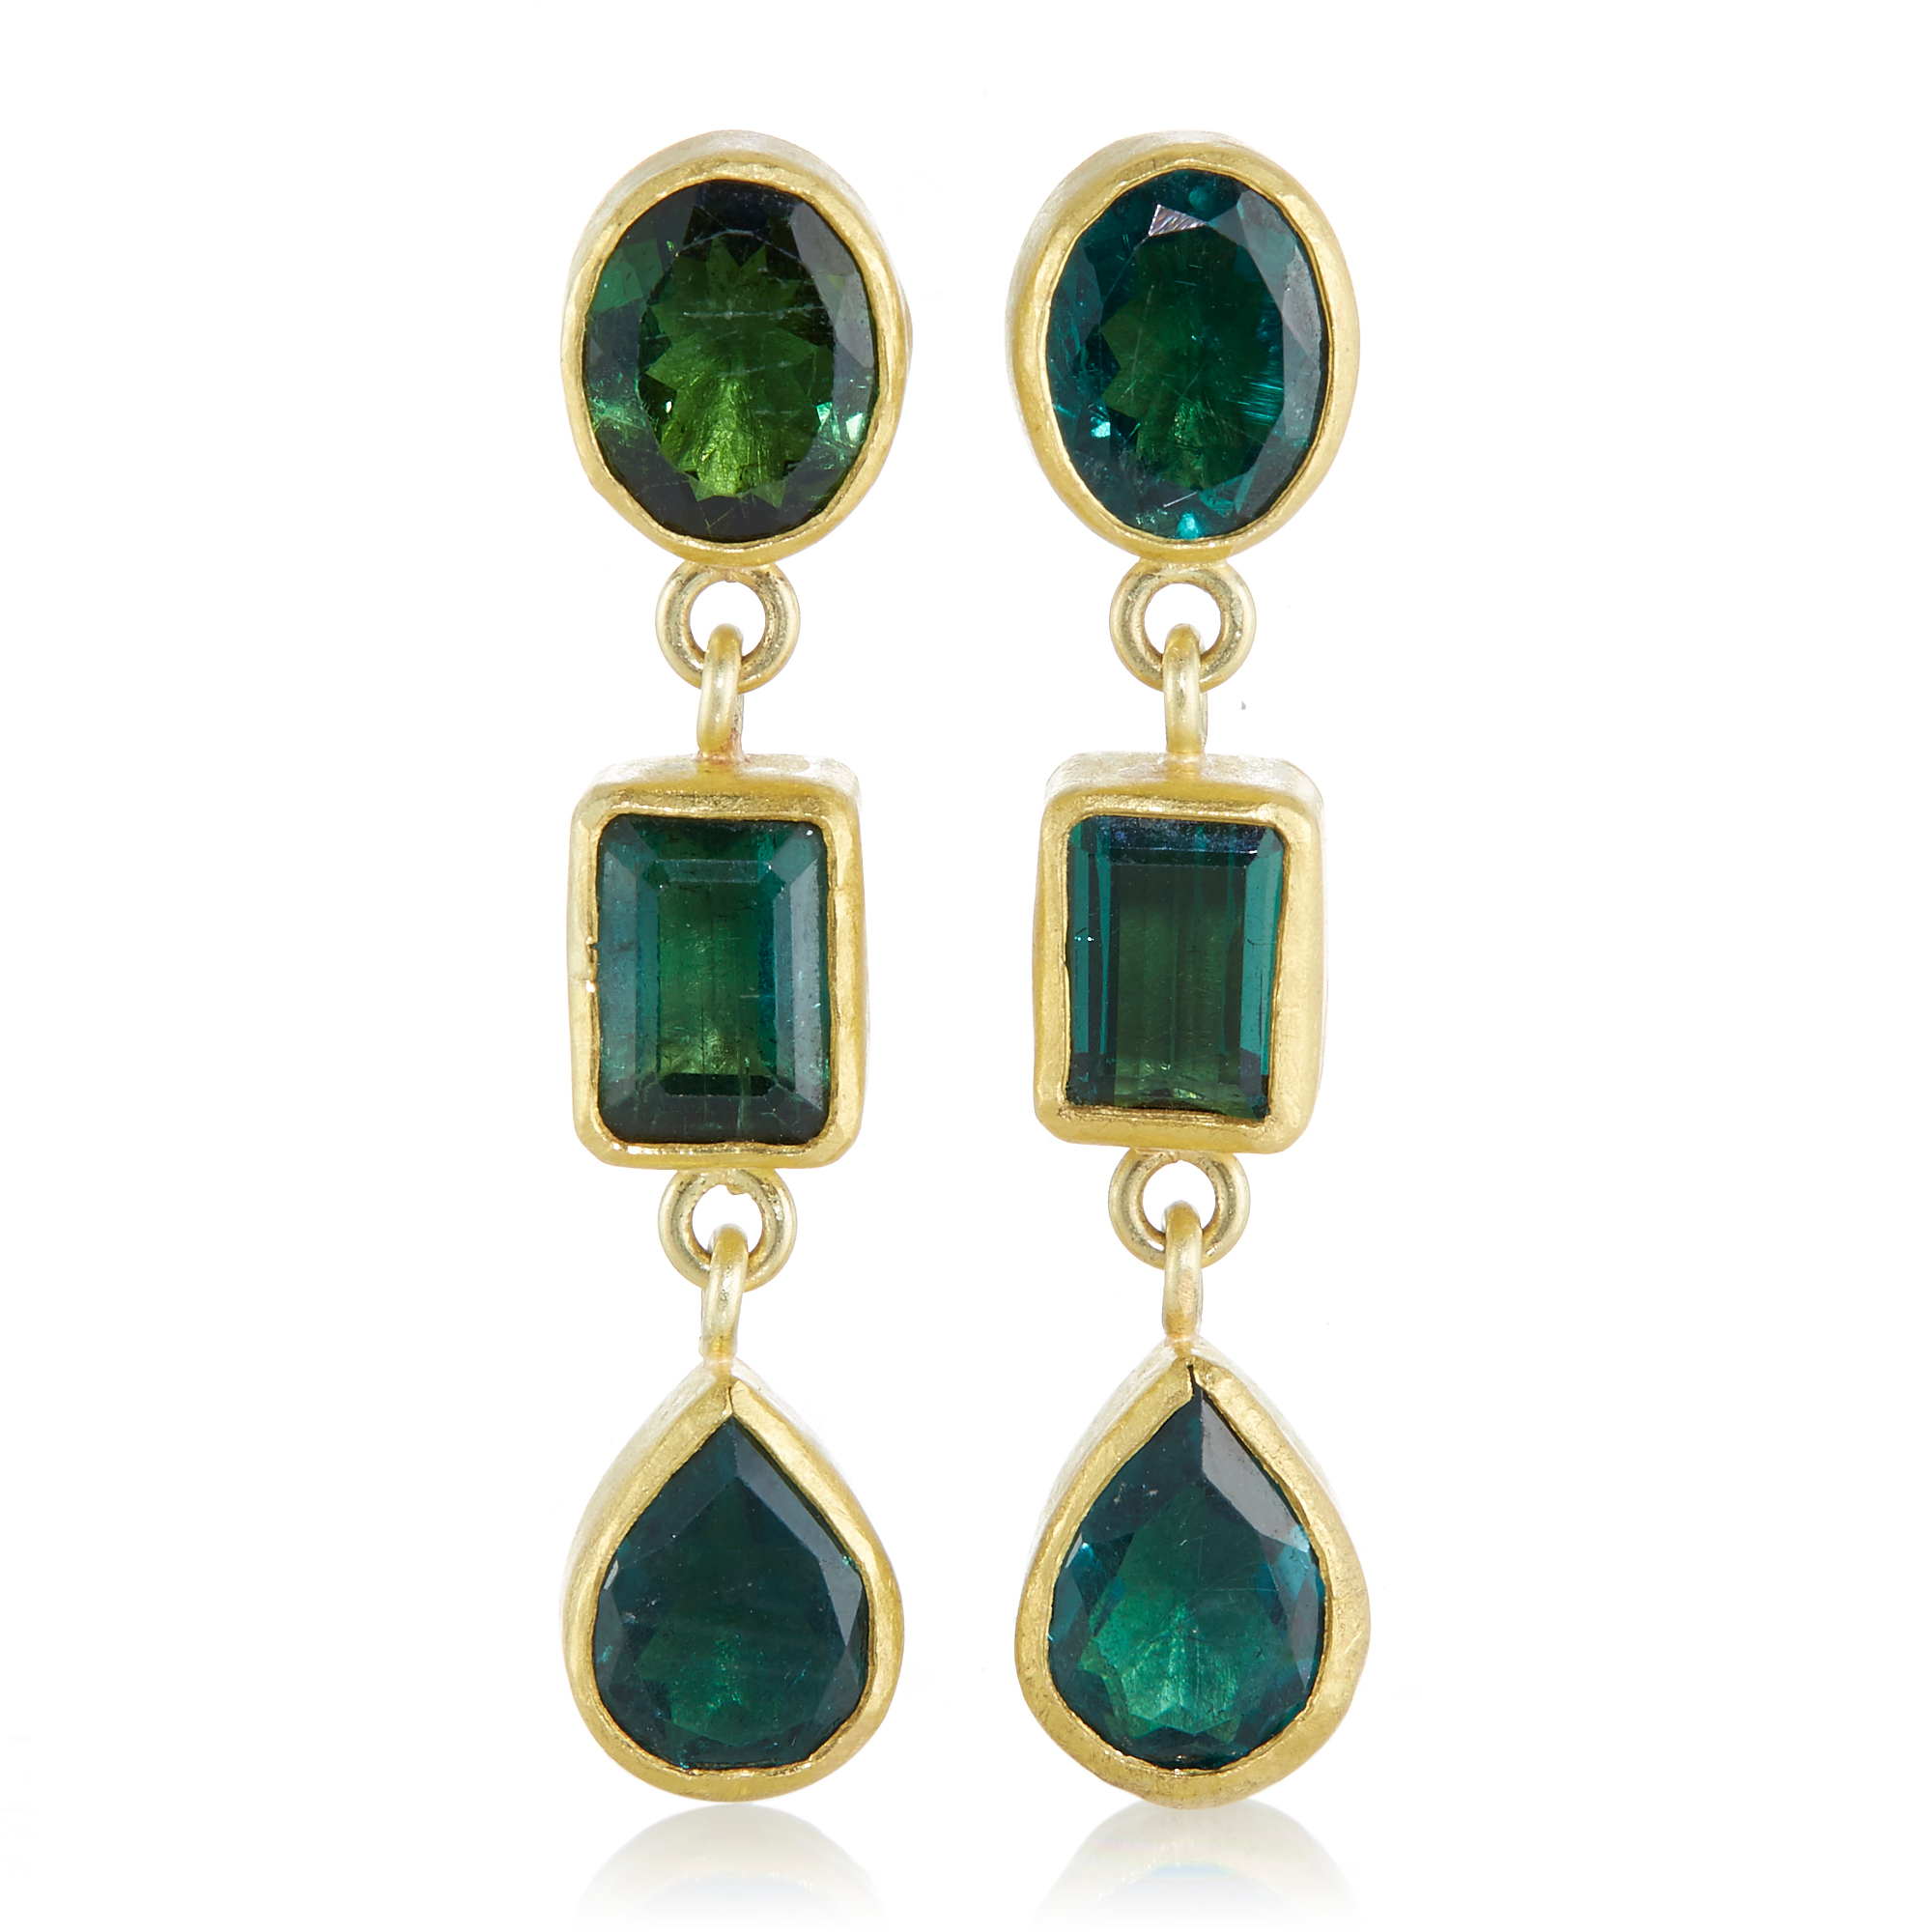 Petra Class Multifaceted Green Tourmaline Earrings